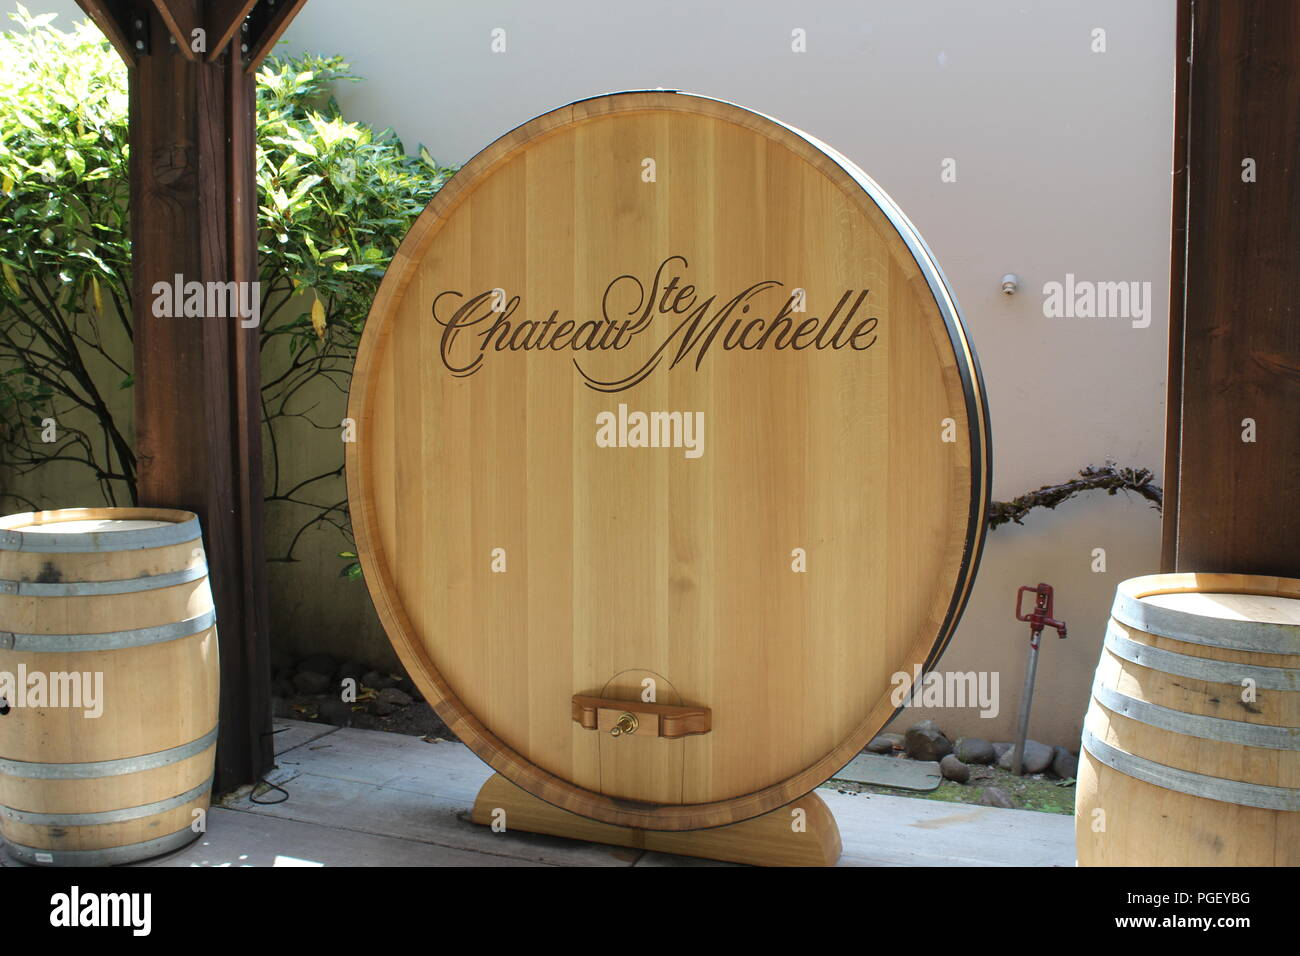 Chateau Ste. Michelle, Washington State's oldest winery, located in Woodinville, Washington, near Seattle. - Stock Image